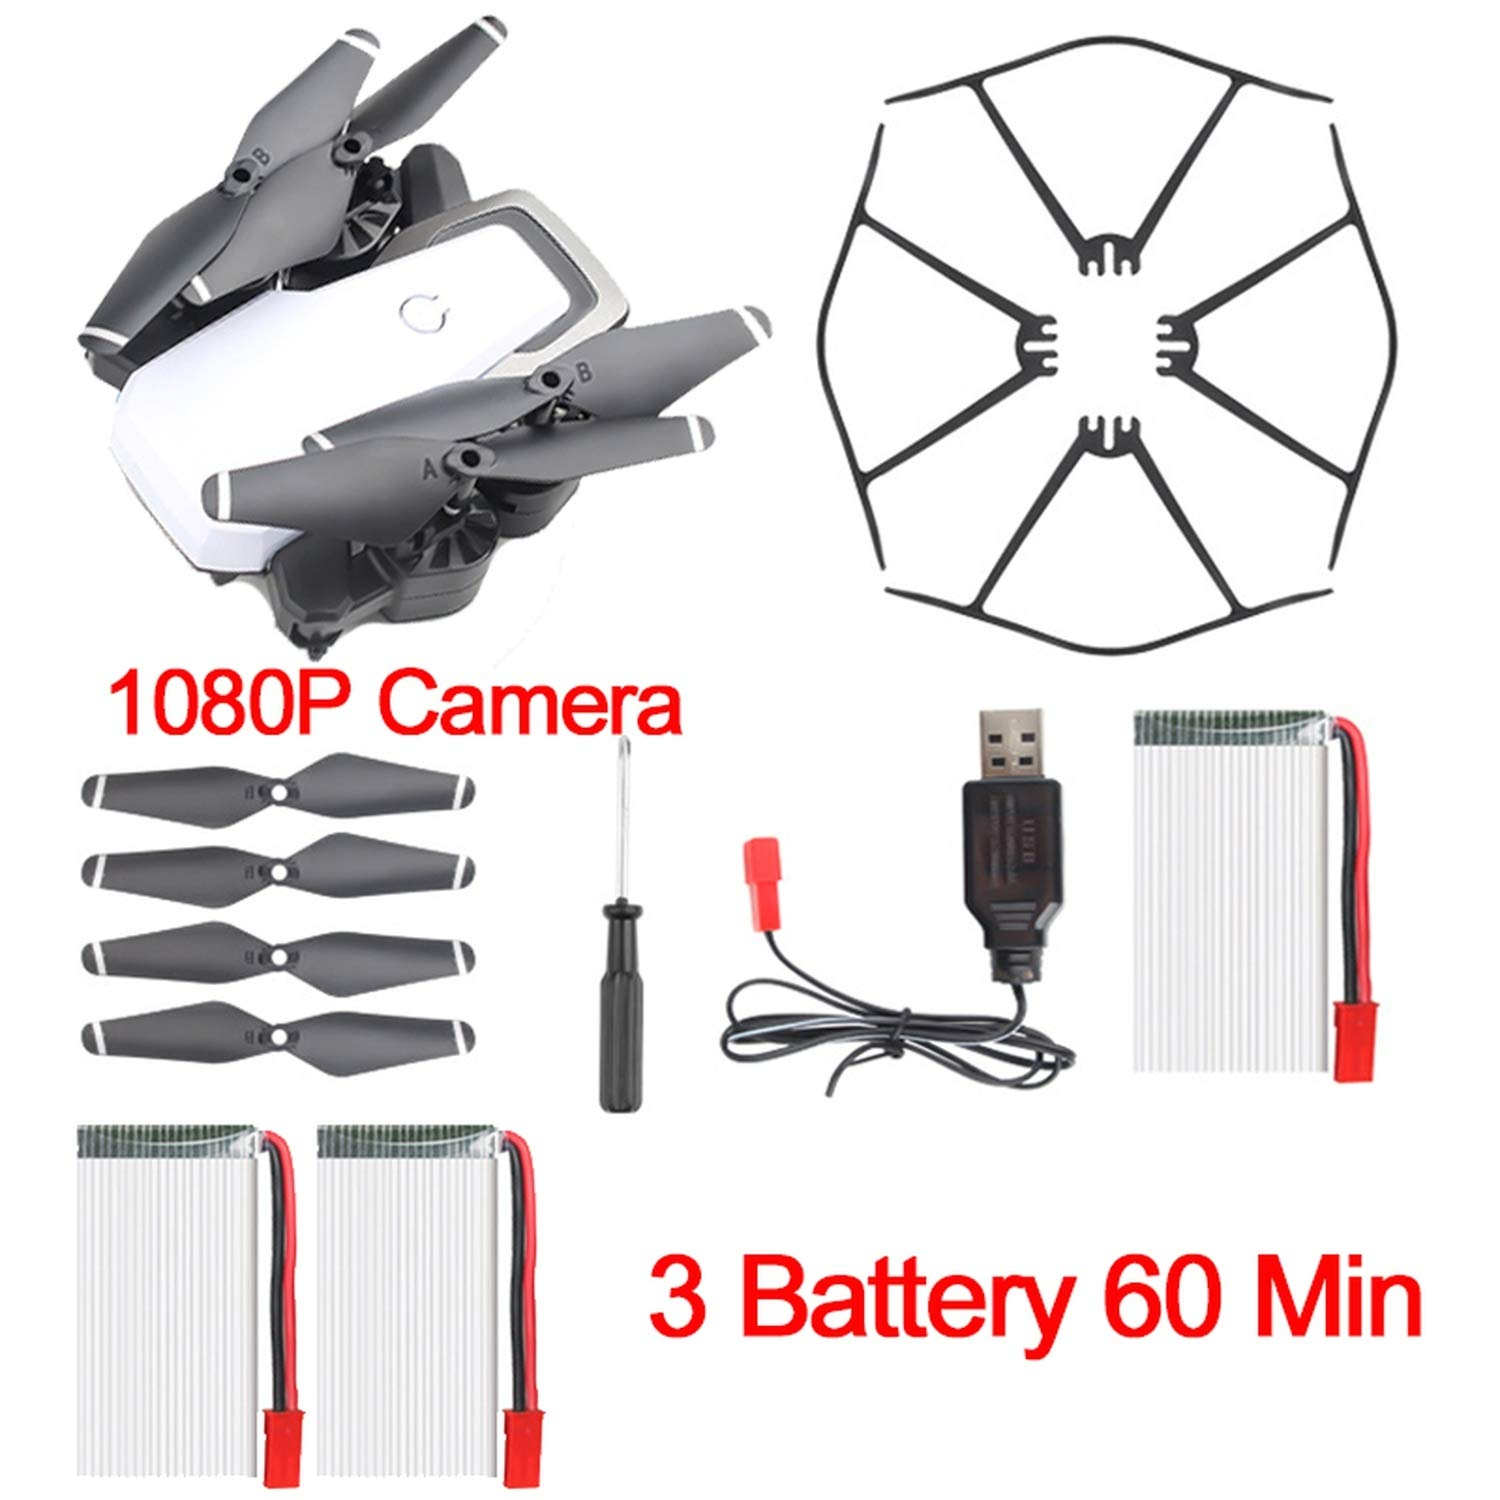 D8 Camera Drone 20 Mins Drone Battery 5MP FPV WiFi 1080P Drone with Camera HD Quadcopter Mini Drone Foldable,White 2 Batteries